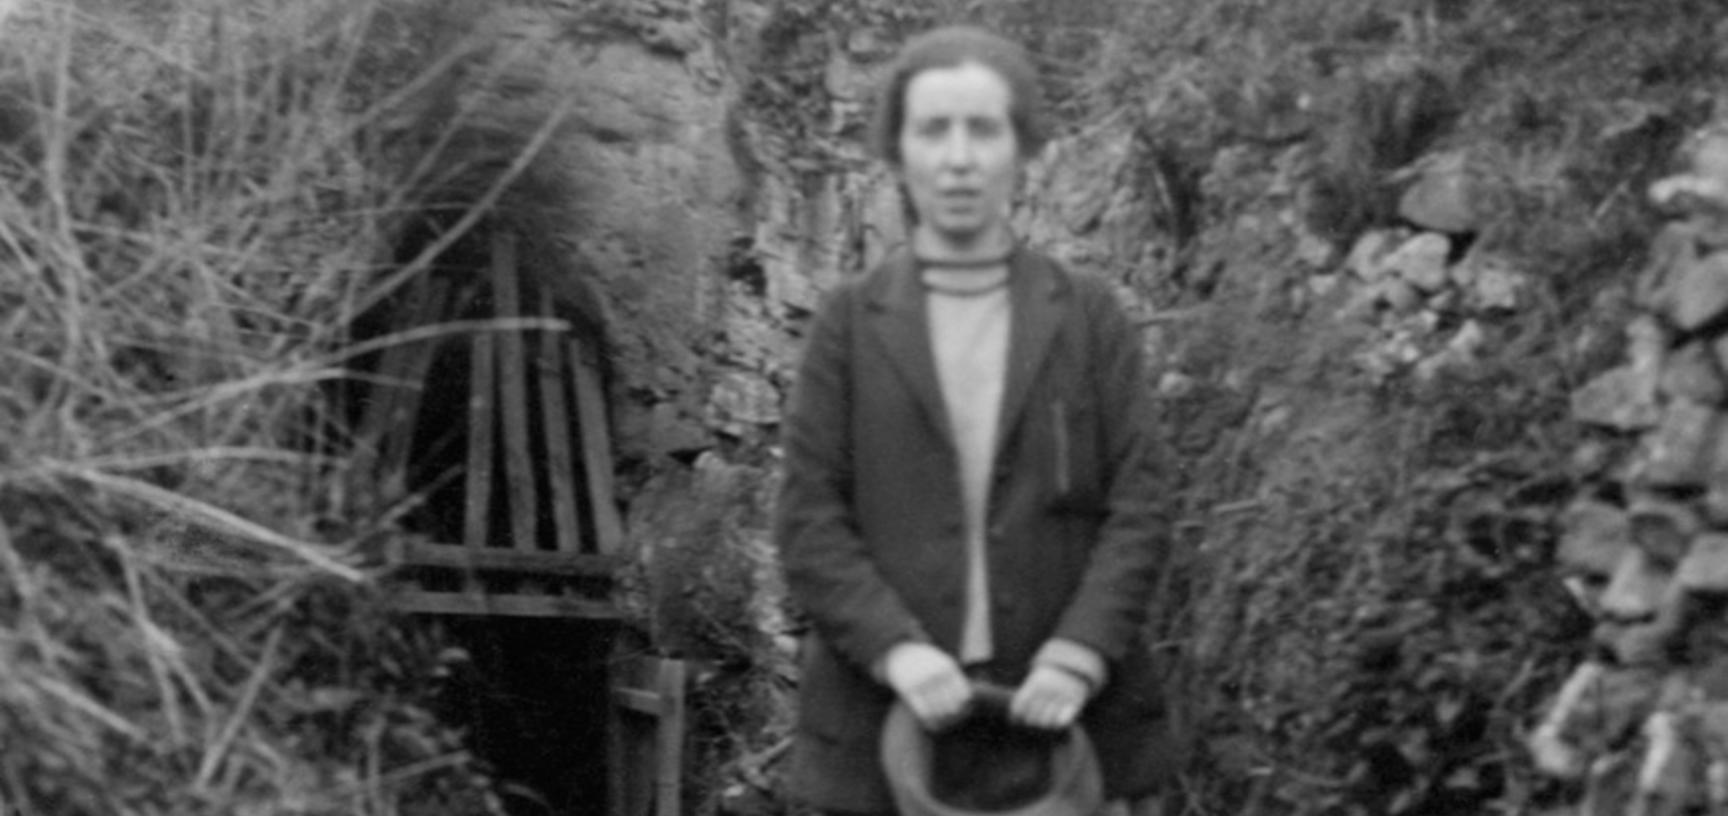 Portrait of Dorothy Garrod outside a British cave sometime in the 1920s (possibly Langwith Cave, Derbyshire, where she excavated briefly in 1927). (Copyright Pitt Rivers Museum, University of Oxford. Accession Number: 1998.294.688)